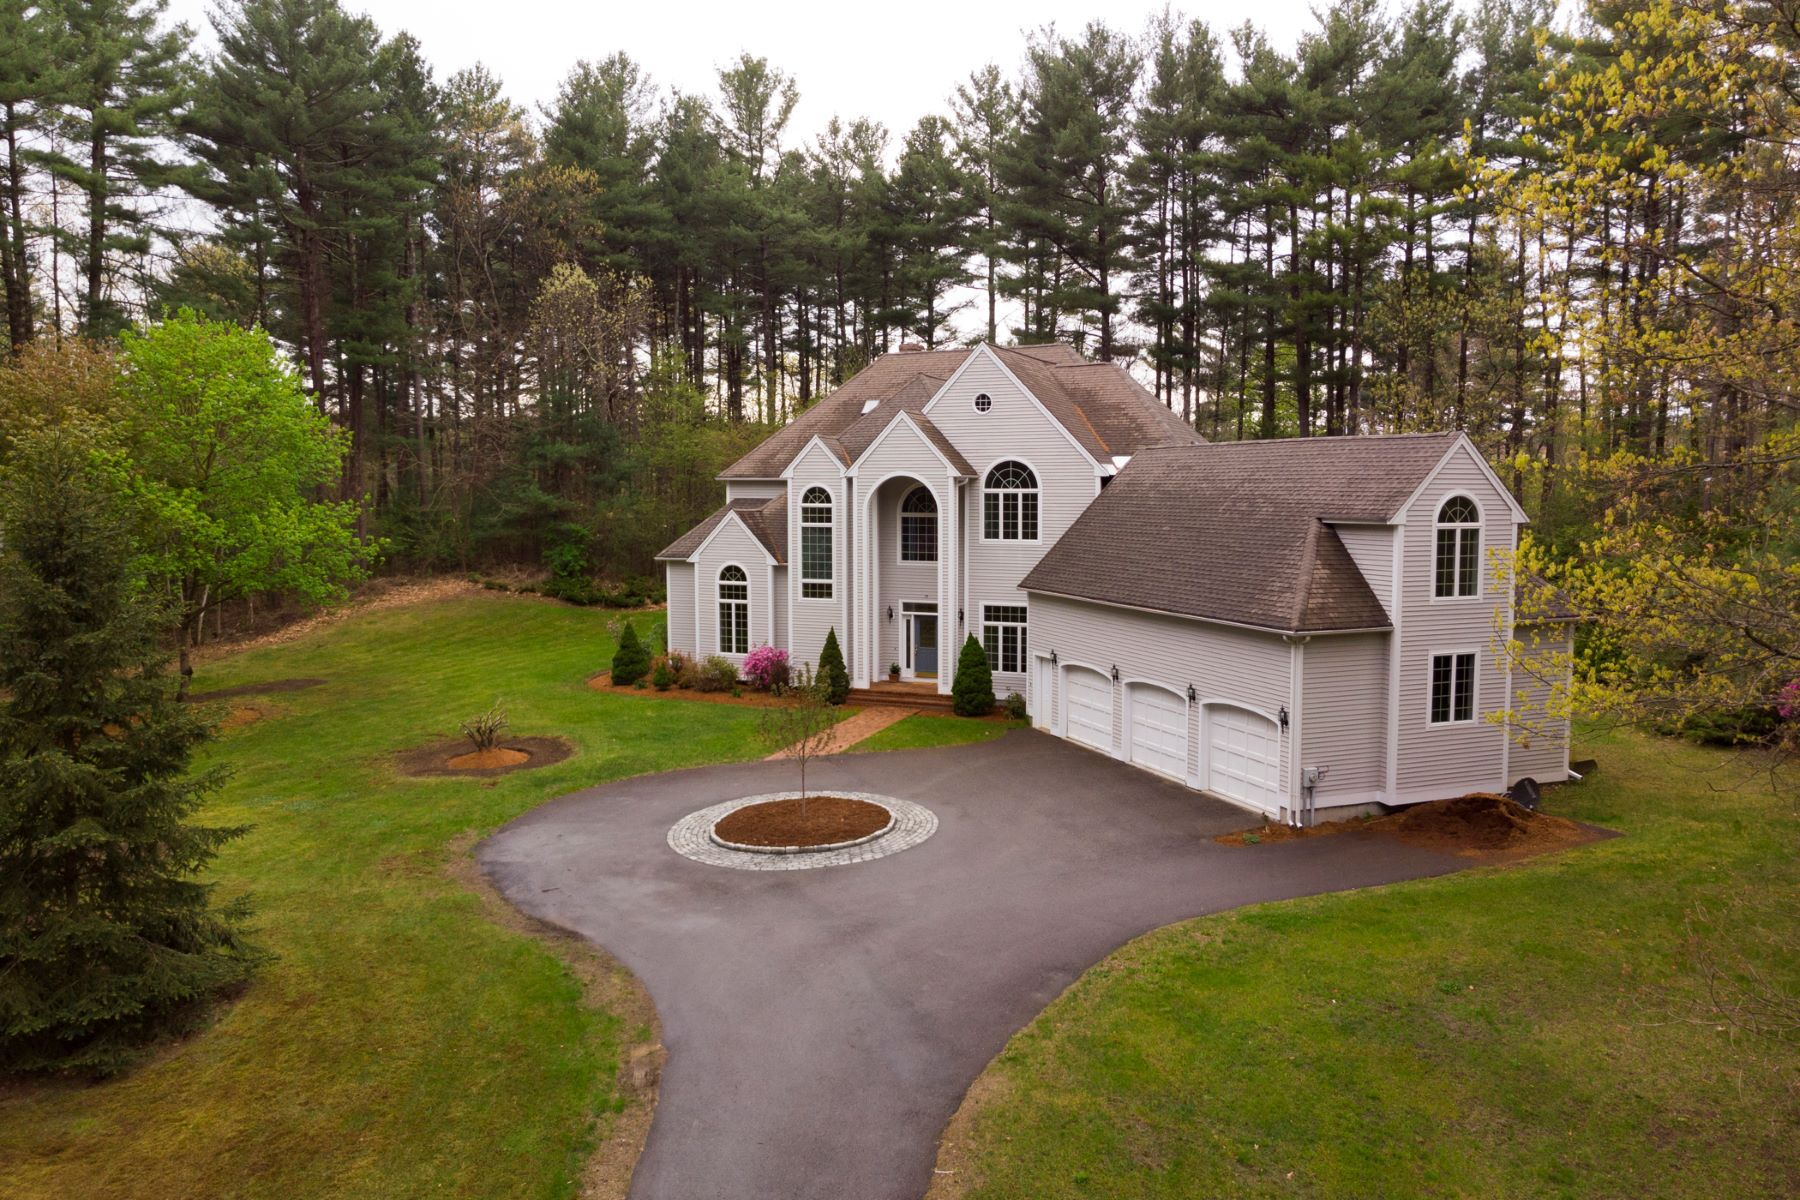 Single Family Home for Active at 75 Hartwell Road, Carlisle 75 Hartwell Rd Carlisle, Massachusetts 01741 United States